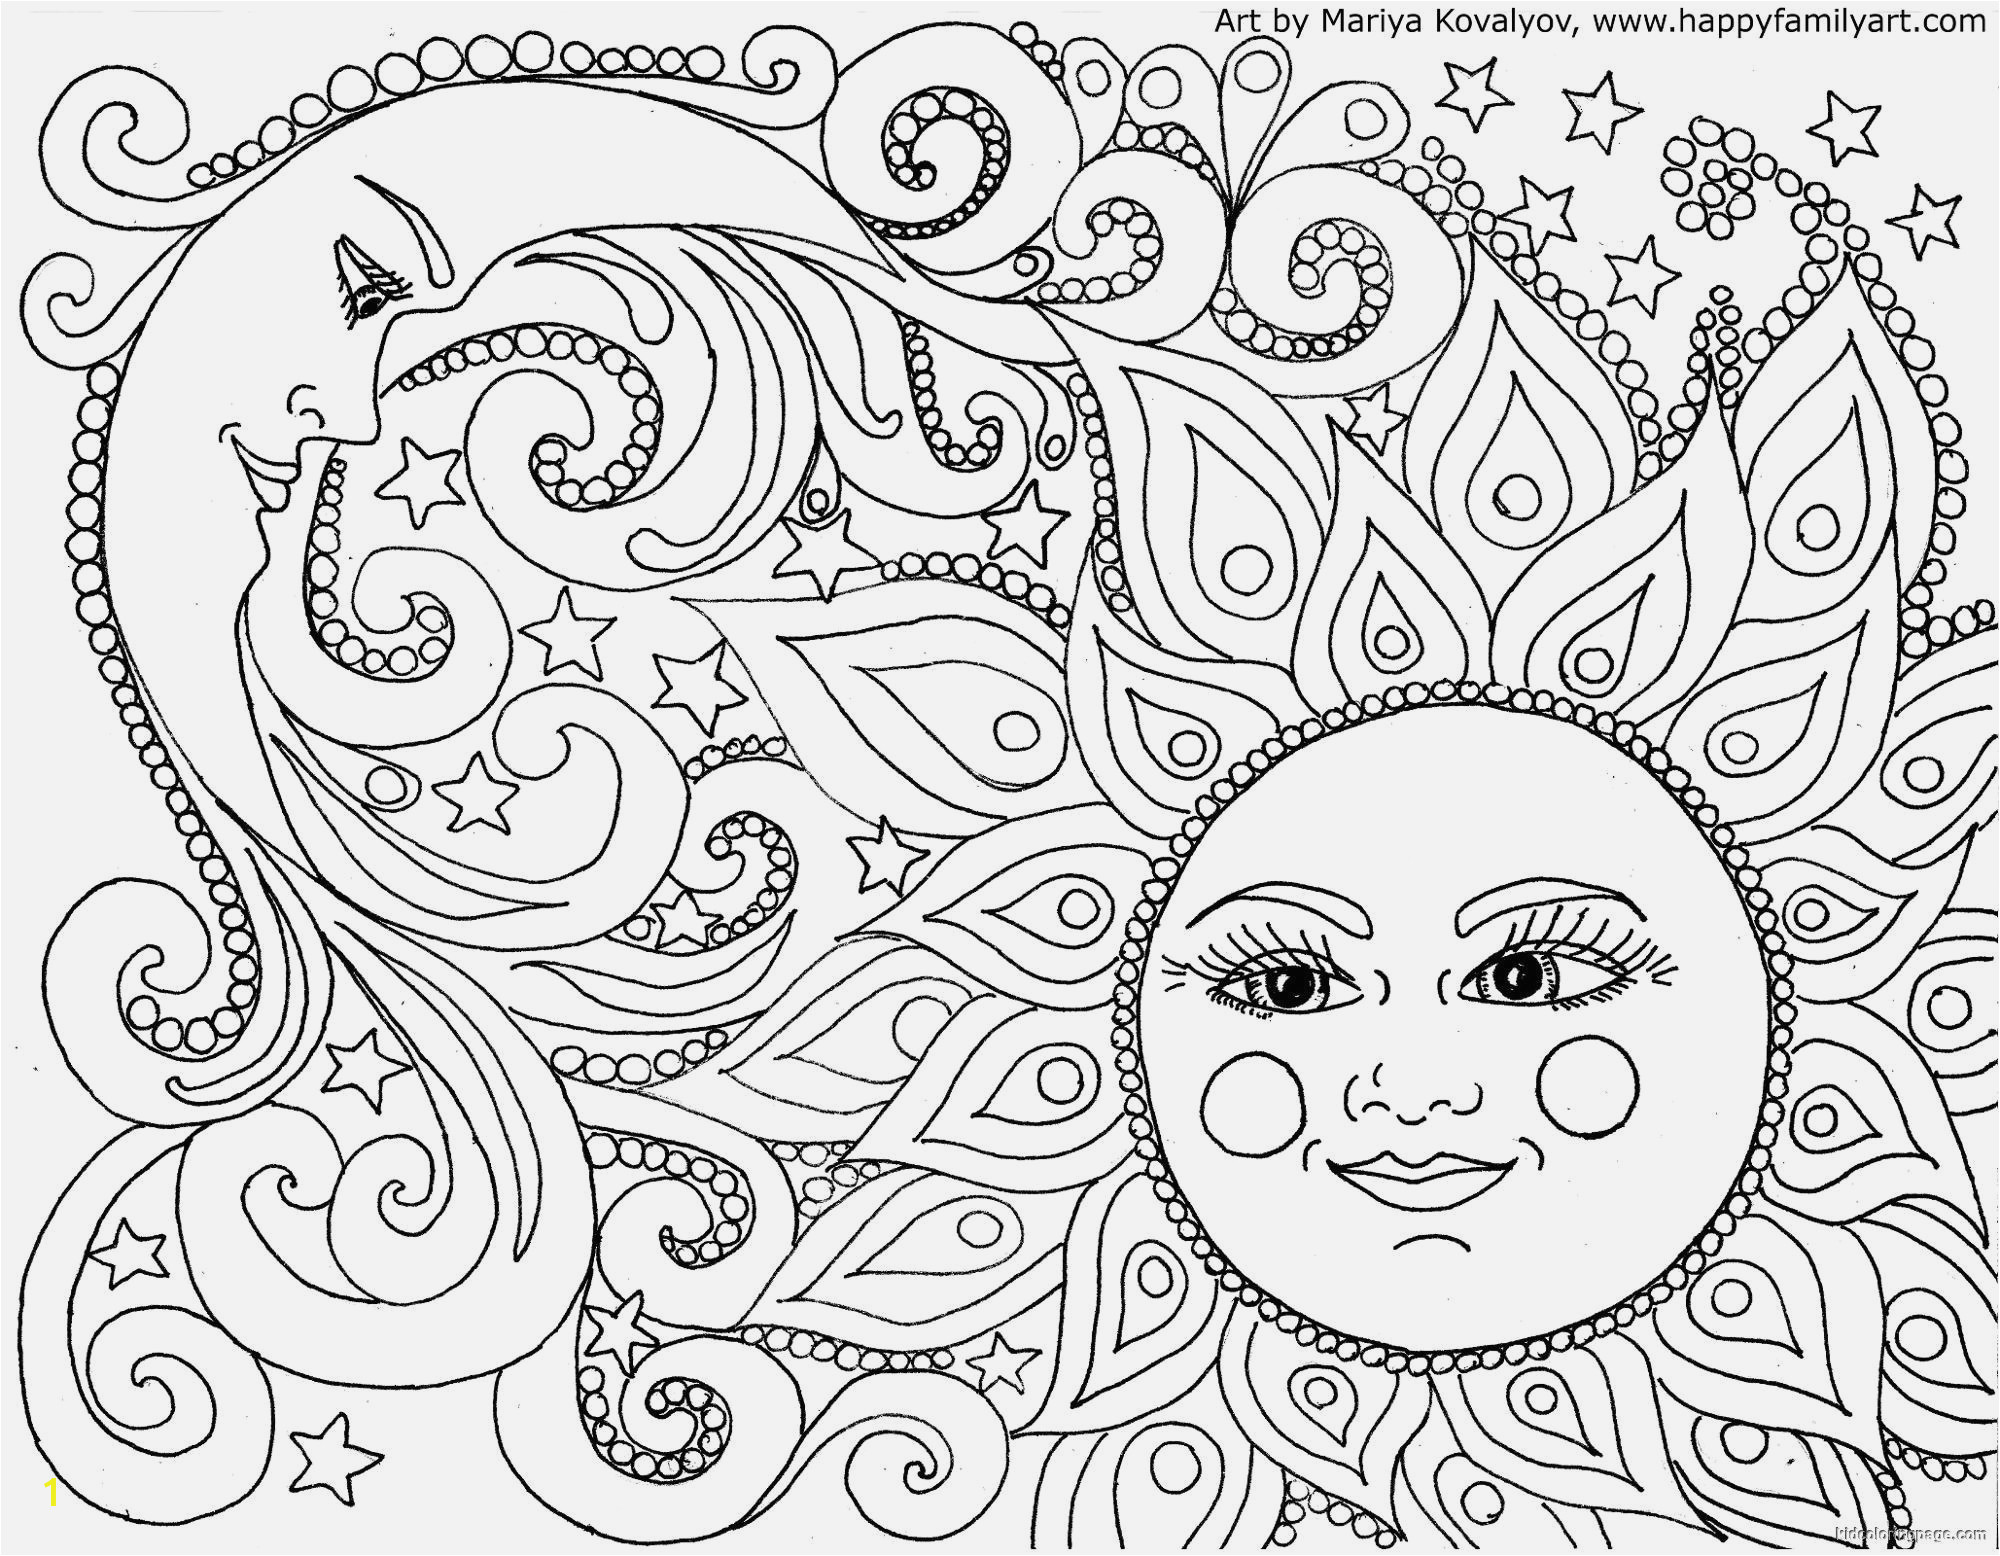 Sun Coloring Page Free Print Luxury Pokemon Sun and Moon Coloring Pages Sun Coloring Page